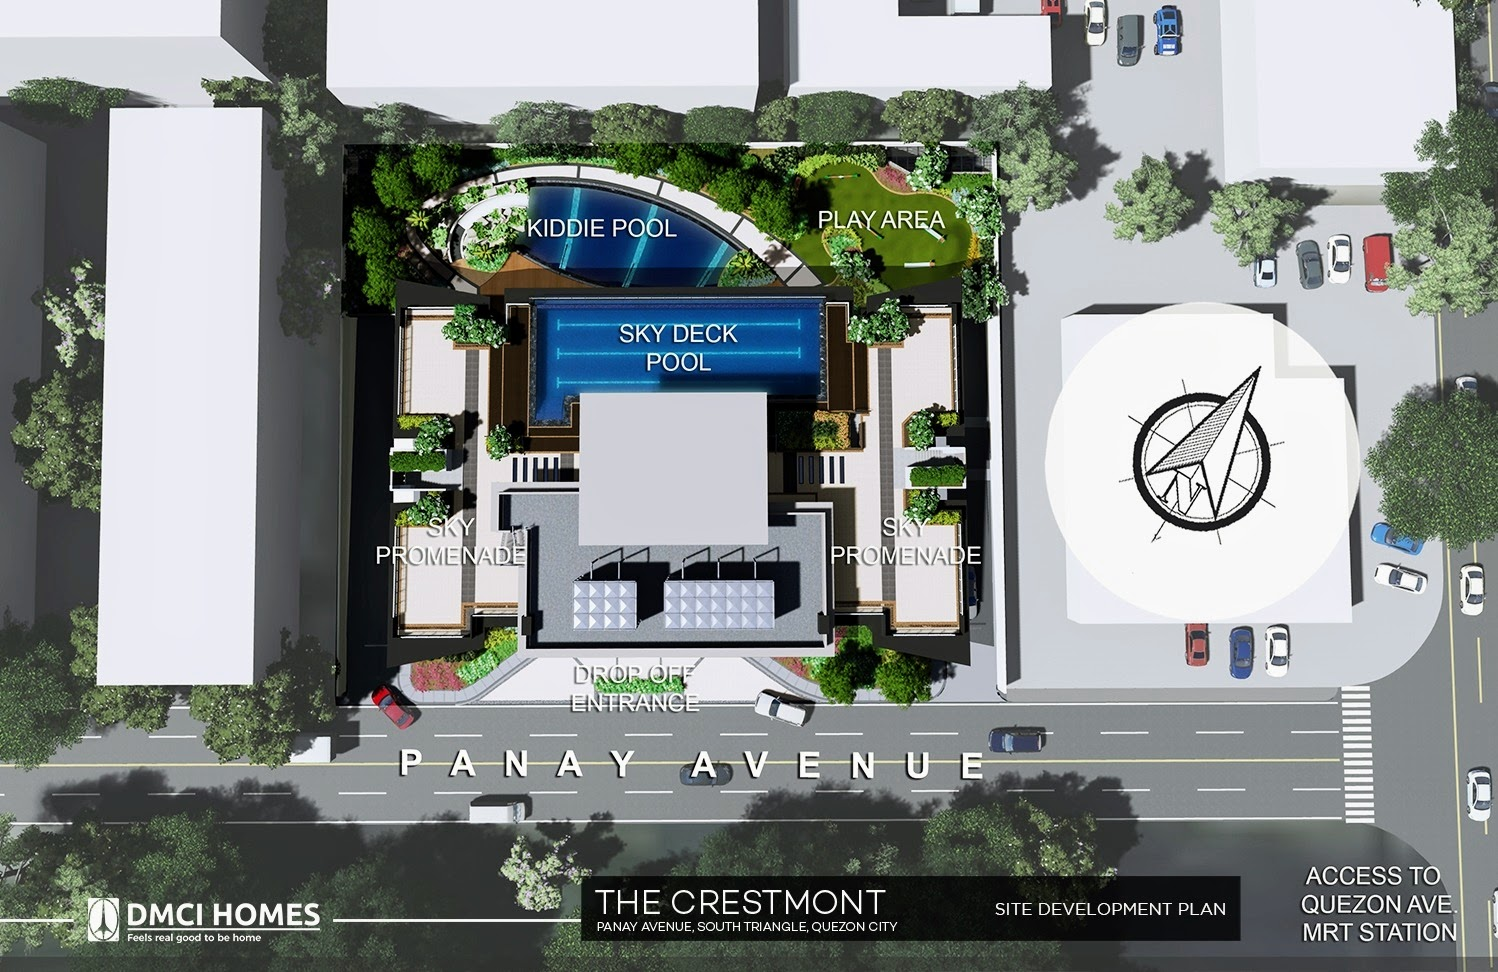 The Cresmont, Panay Avenue, Quezon City site development plan